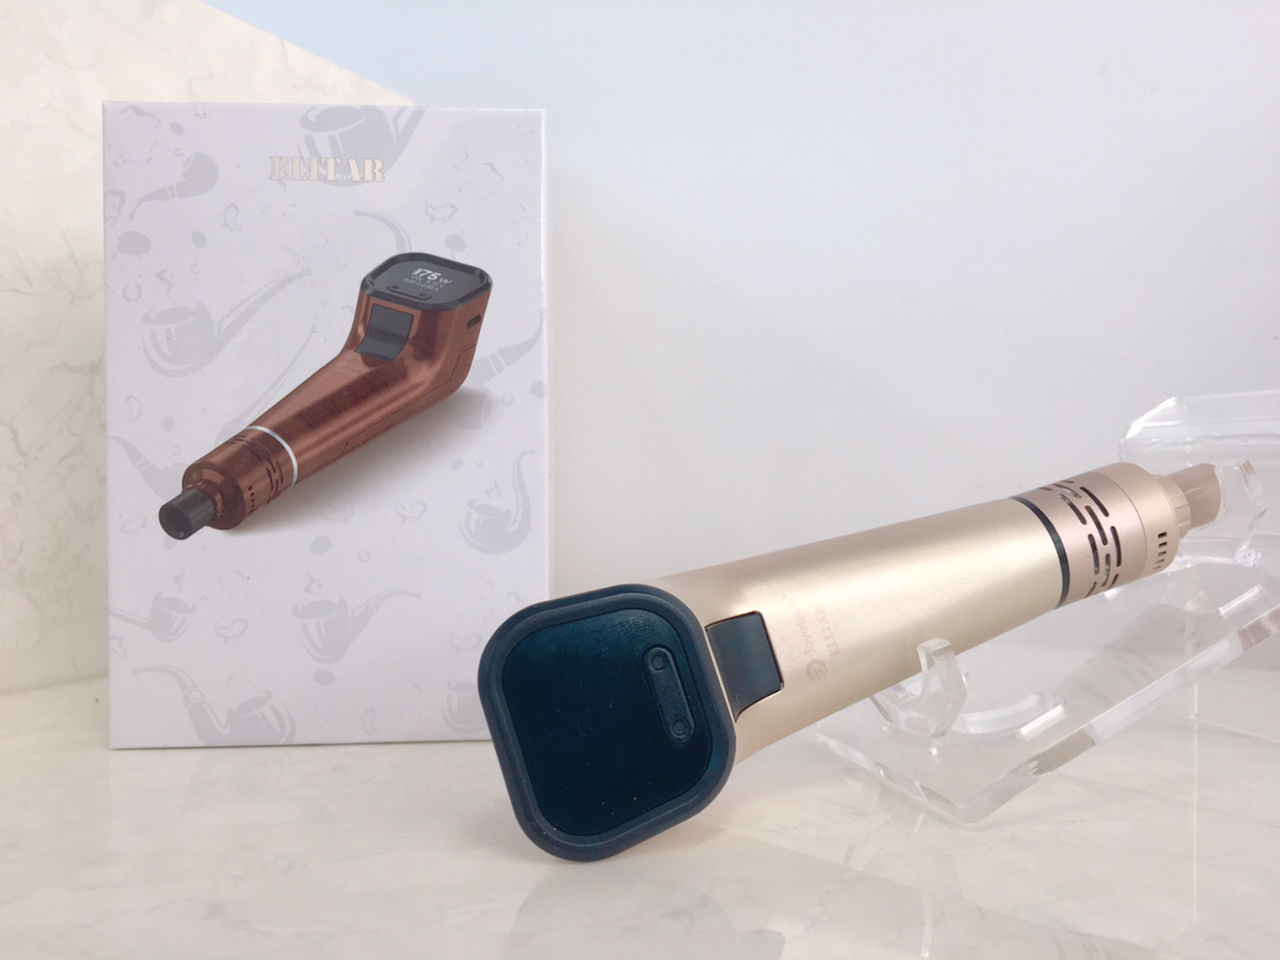 Elitar pipe KIT